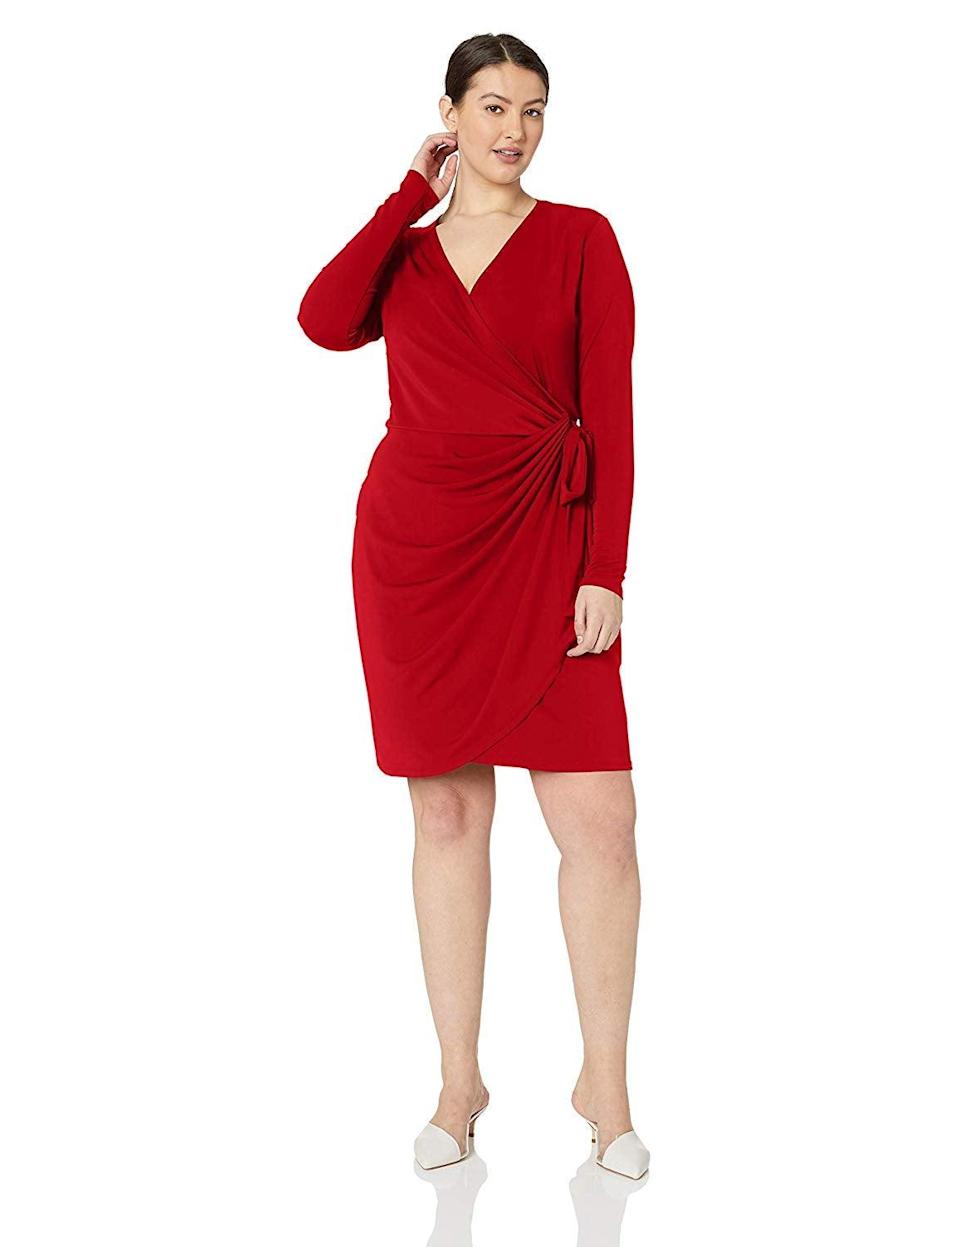 "<br><br><strong>Lark & Ro</strong> Plus Size Classic Long Sleeve Wrap Dress, $, available at <a href=""https://amzn.to/3iv2eoa"" rel=""nofollow noopener"" target=""_blank"" data-ylk=""slk:Amazon"" class=""link rapid-noclick-resp"">Amazon</a>"